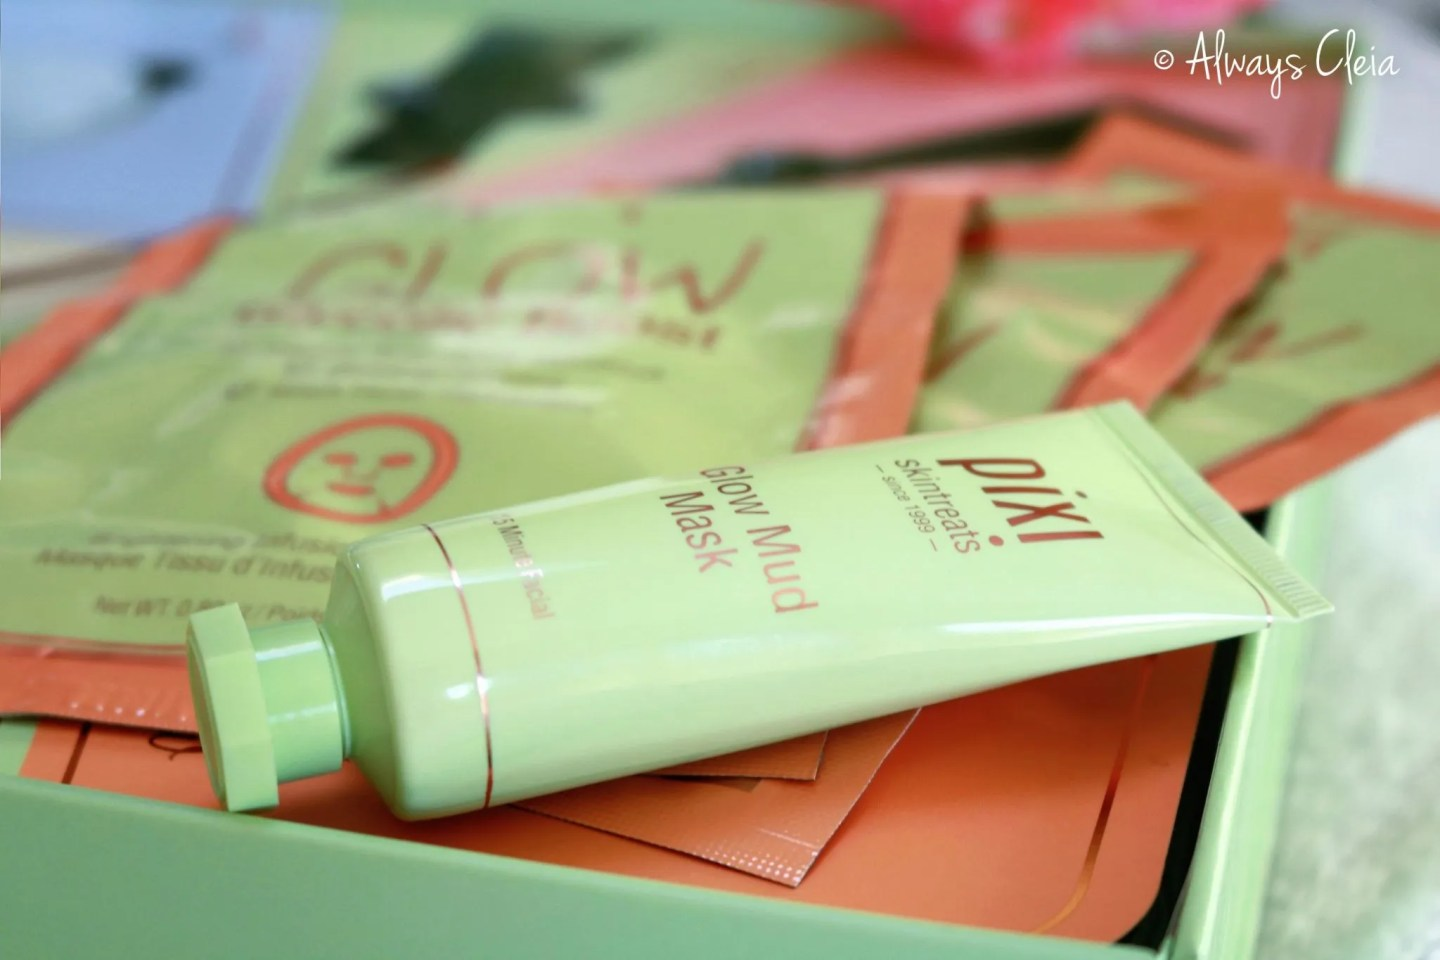 Pixi Beauty Glow Mud Mask Review